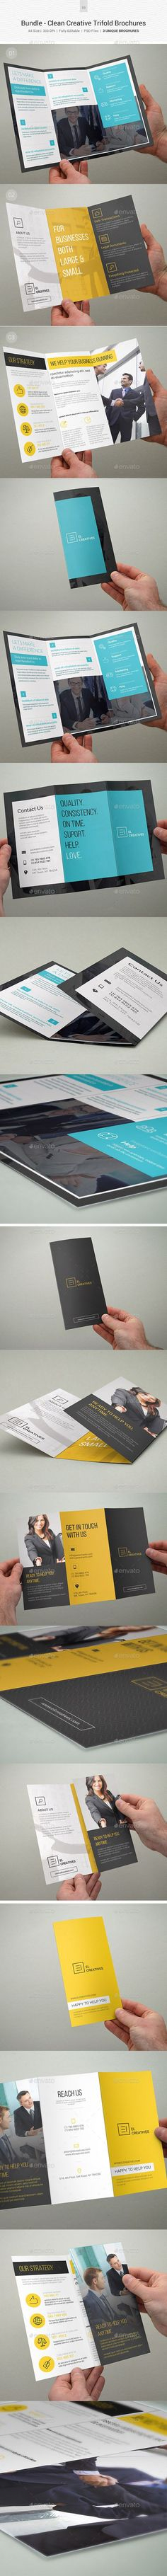 Bundle - Creative Trifold Business Brochures Template #brochure #trifold Download: http://graphicriver.net/item/bundle-creative-trifold-business-brochures-03/11403874?ref=ksioks